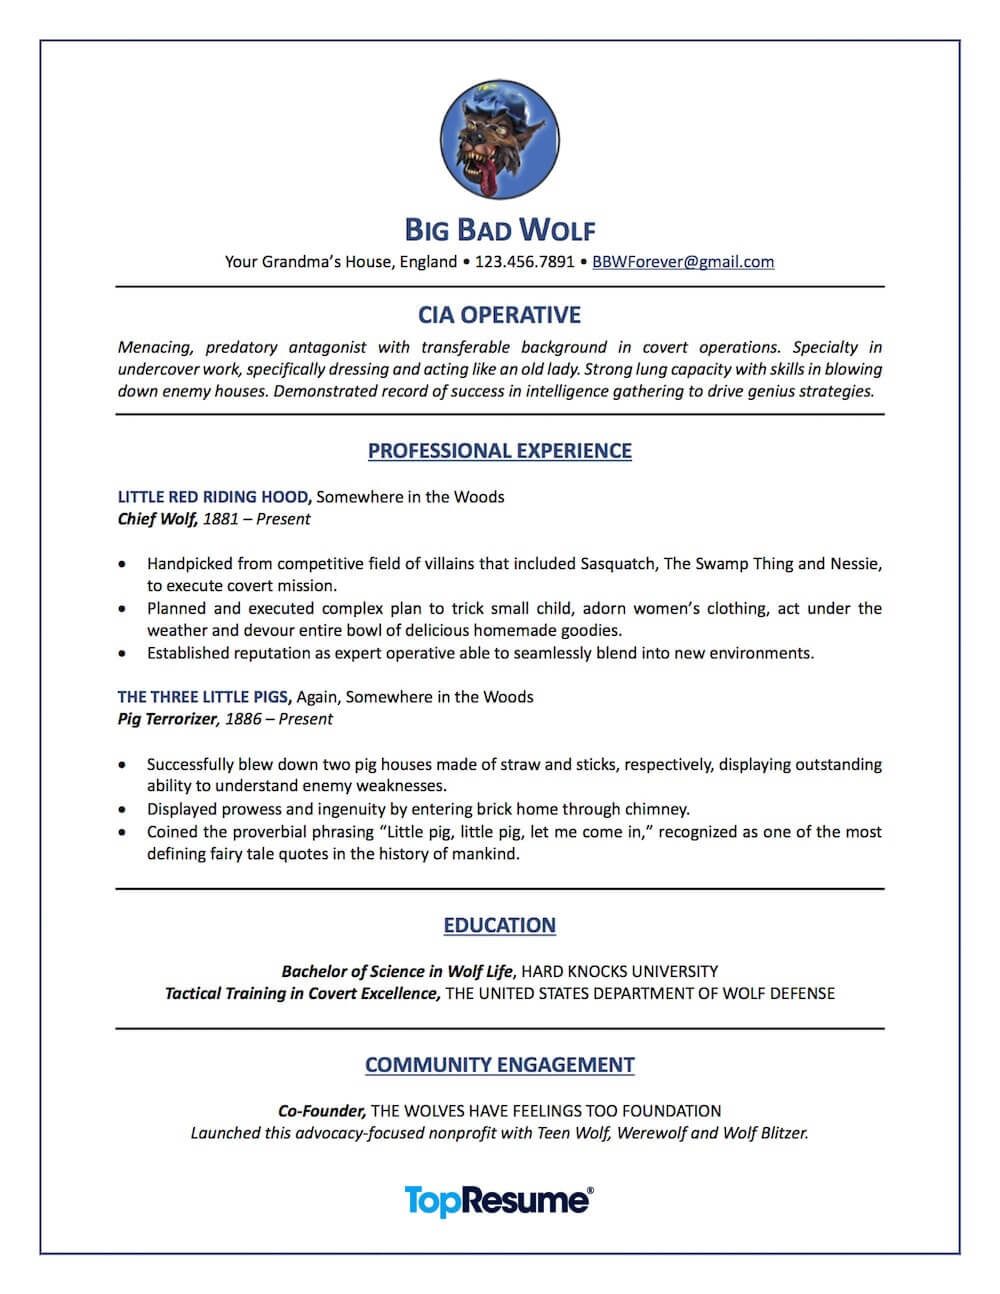 Amazing Big Bad Wolf Resume Makeover With Rewrite My Resume